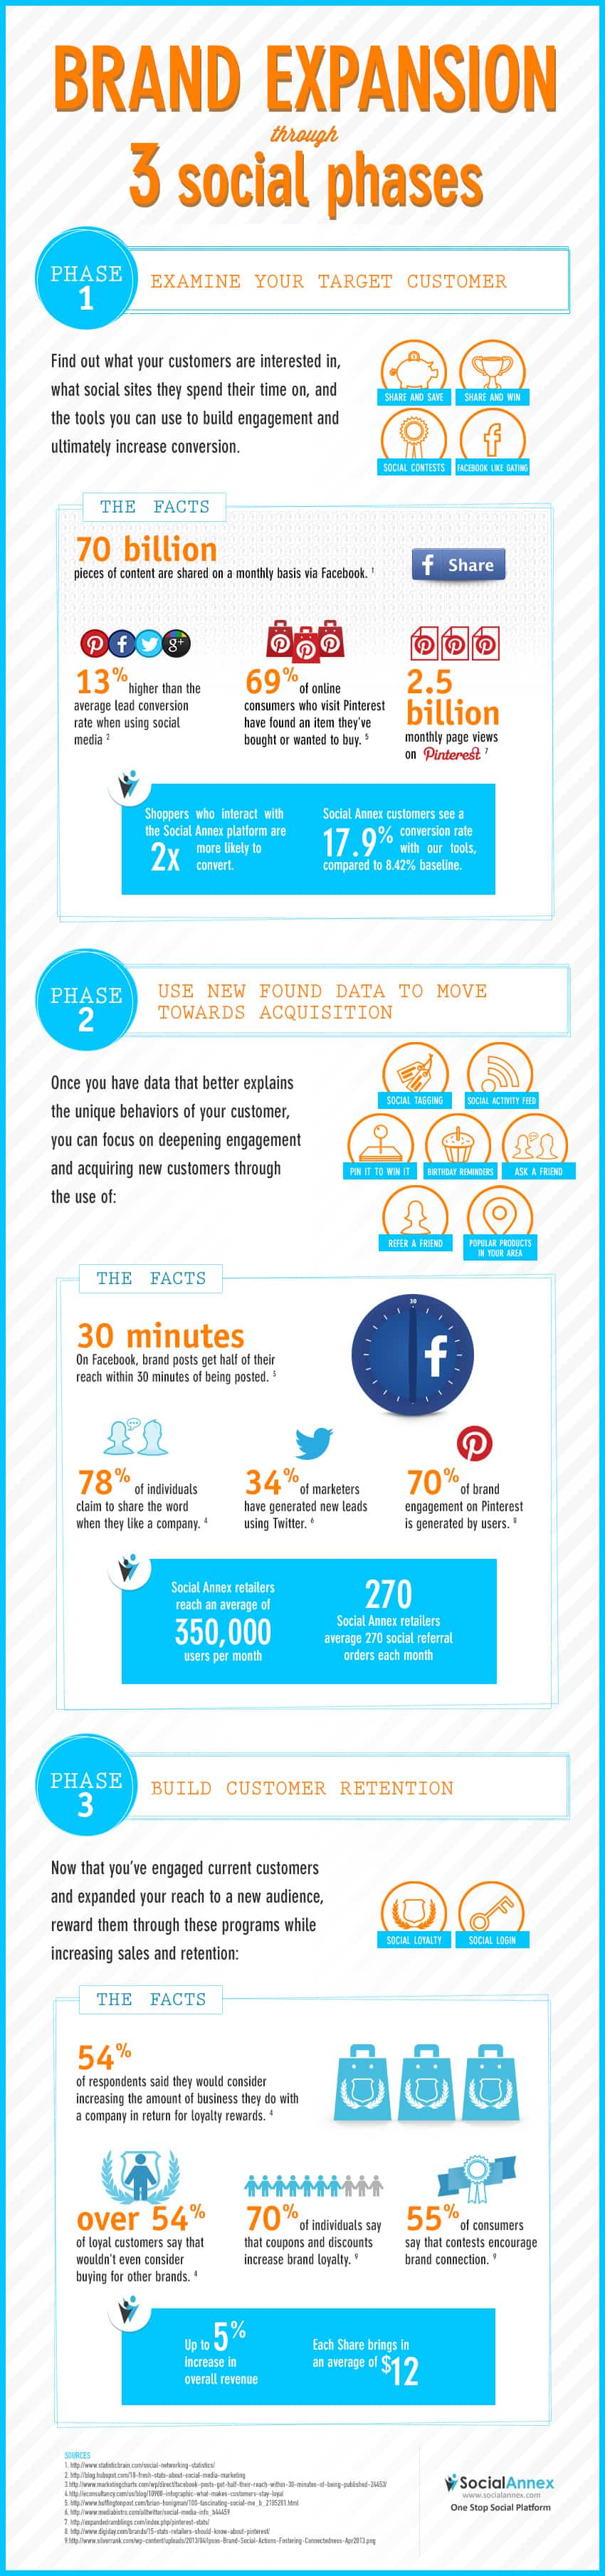 Brand Expansion through 3 Social Phases Infographic  Seafoam Media St Louis